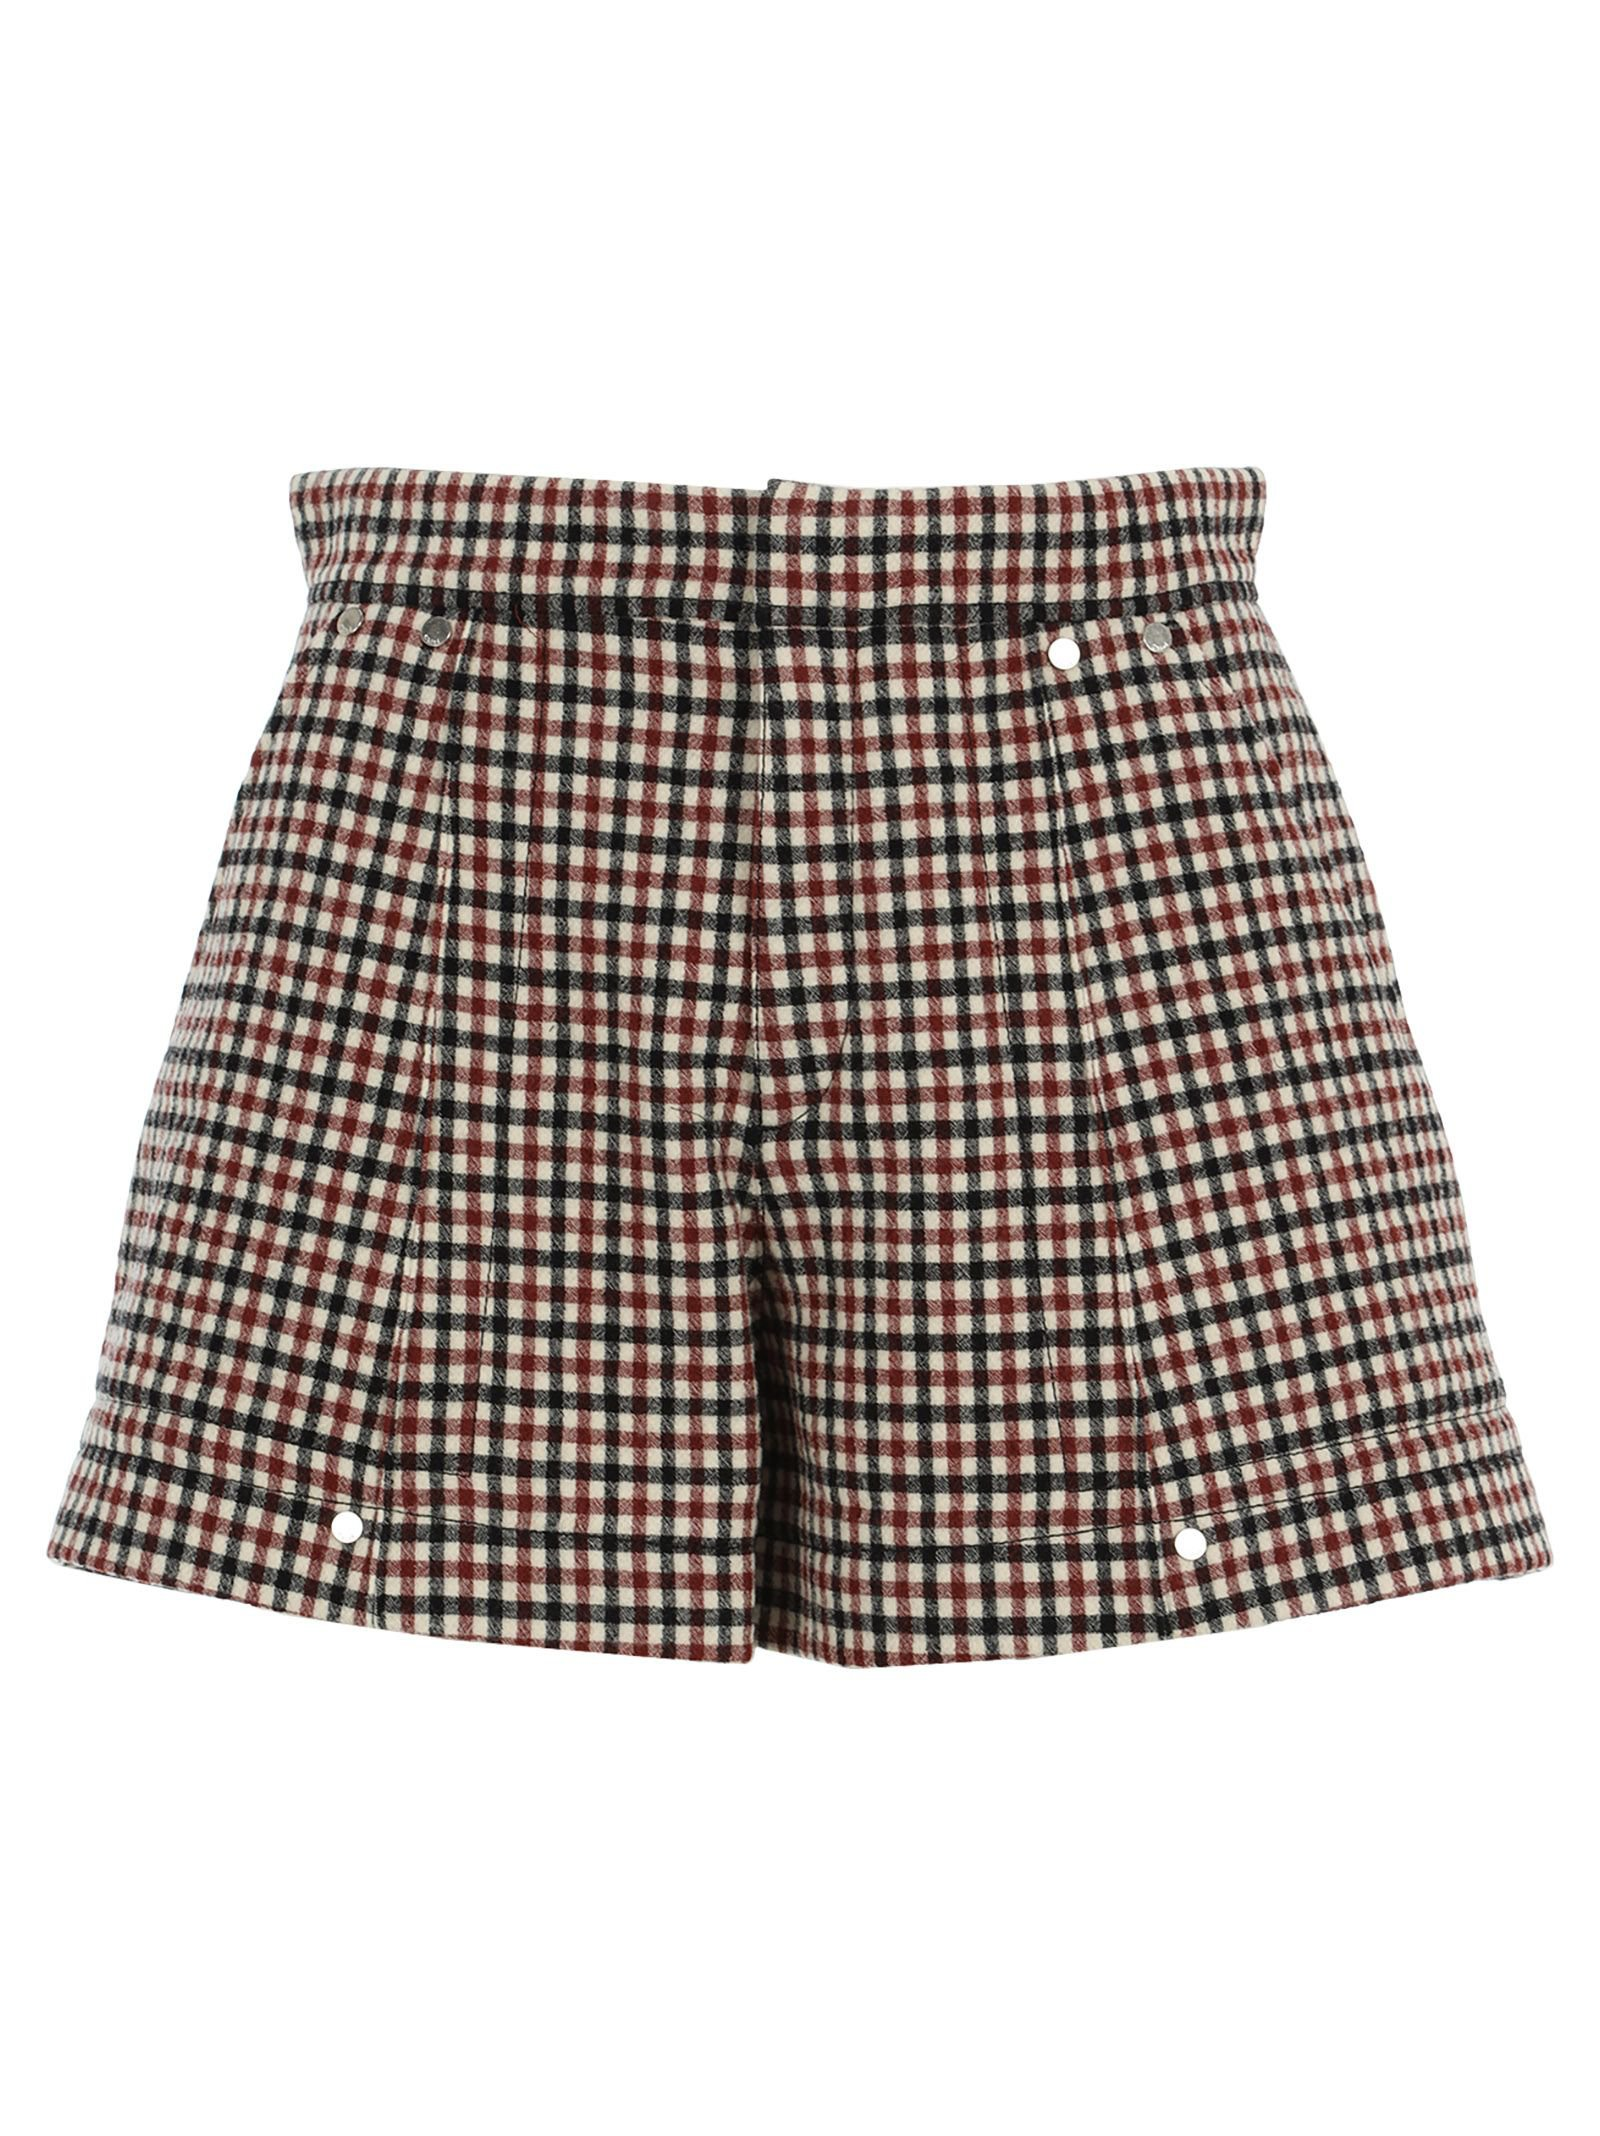 Chloe Check Shorts